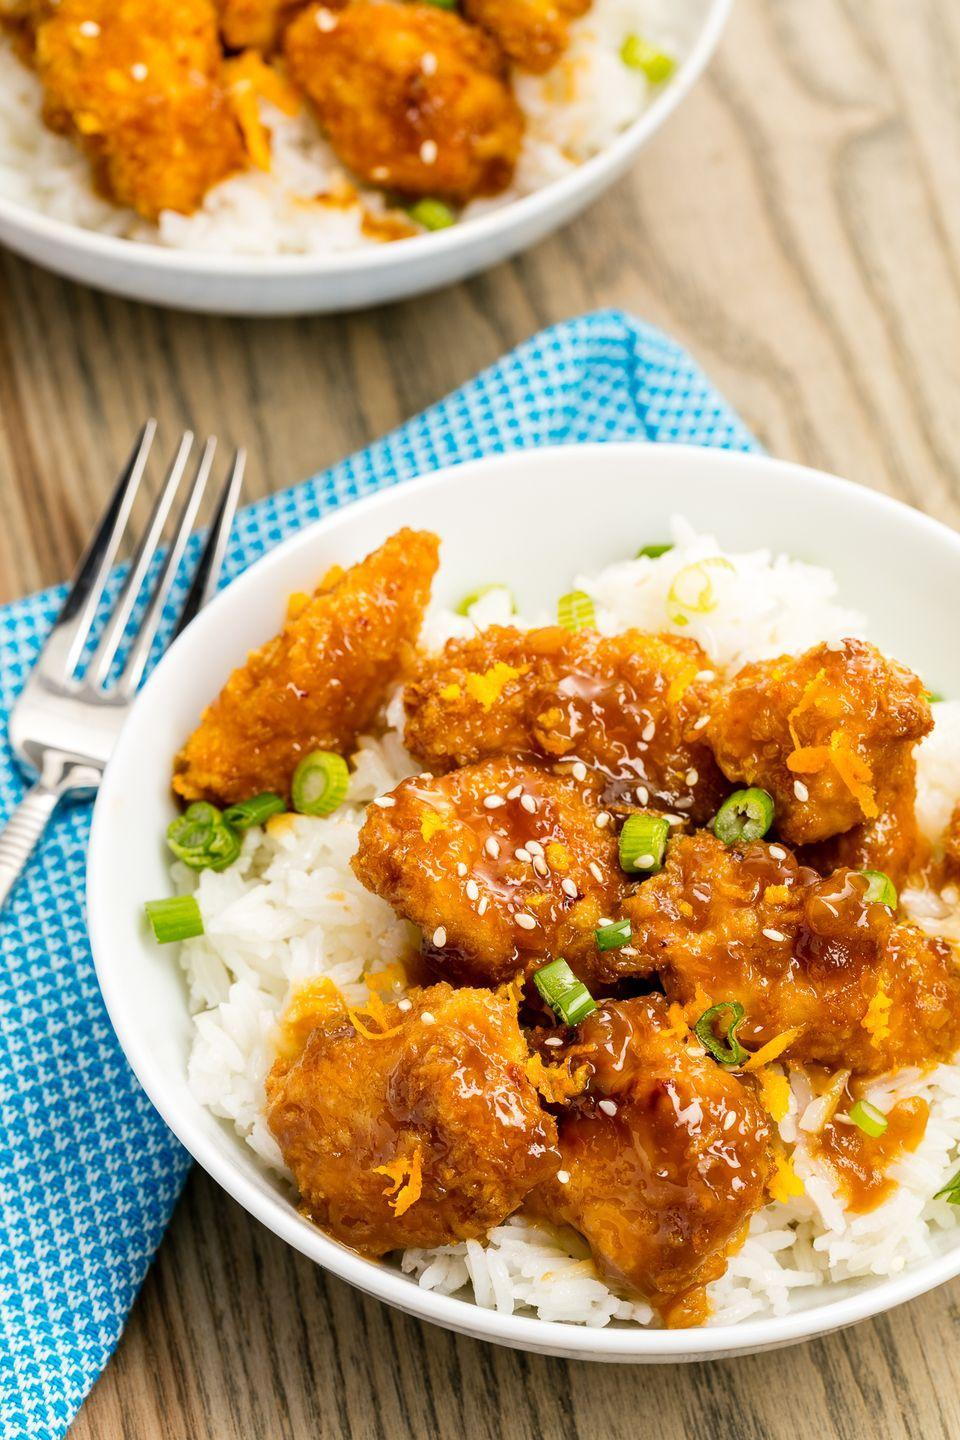 """<p>If you love ordering this for takeout, now you can enjoy it at home with zero guilt.</p><p>Get the recipe from <a href=""""/cooking/recipe-ideas/recipes/a46657/skinny-orange-chicken-recipe/"""" data-ylk=""""slk:Delish"""" class=""""link rapid-noclick-resp"""">Delish</a>.</p>"""